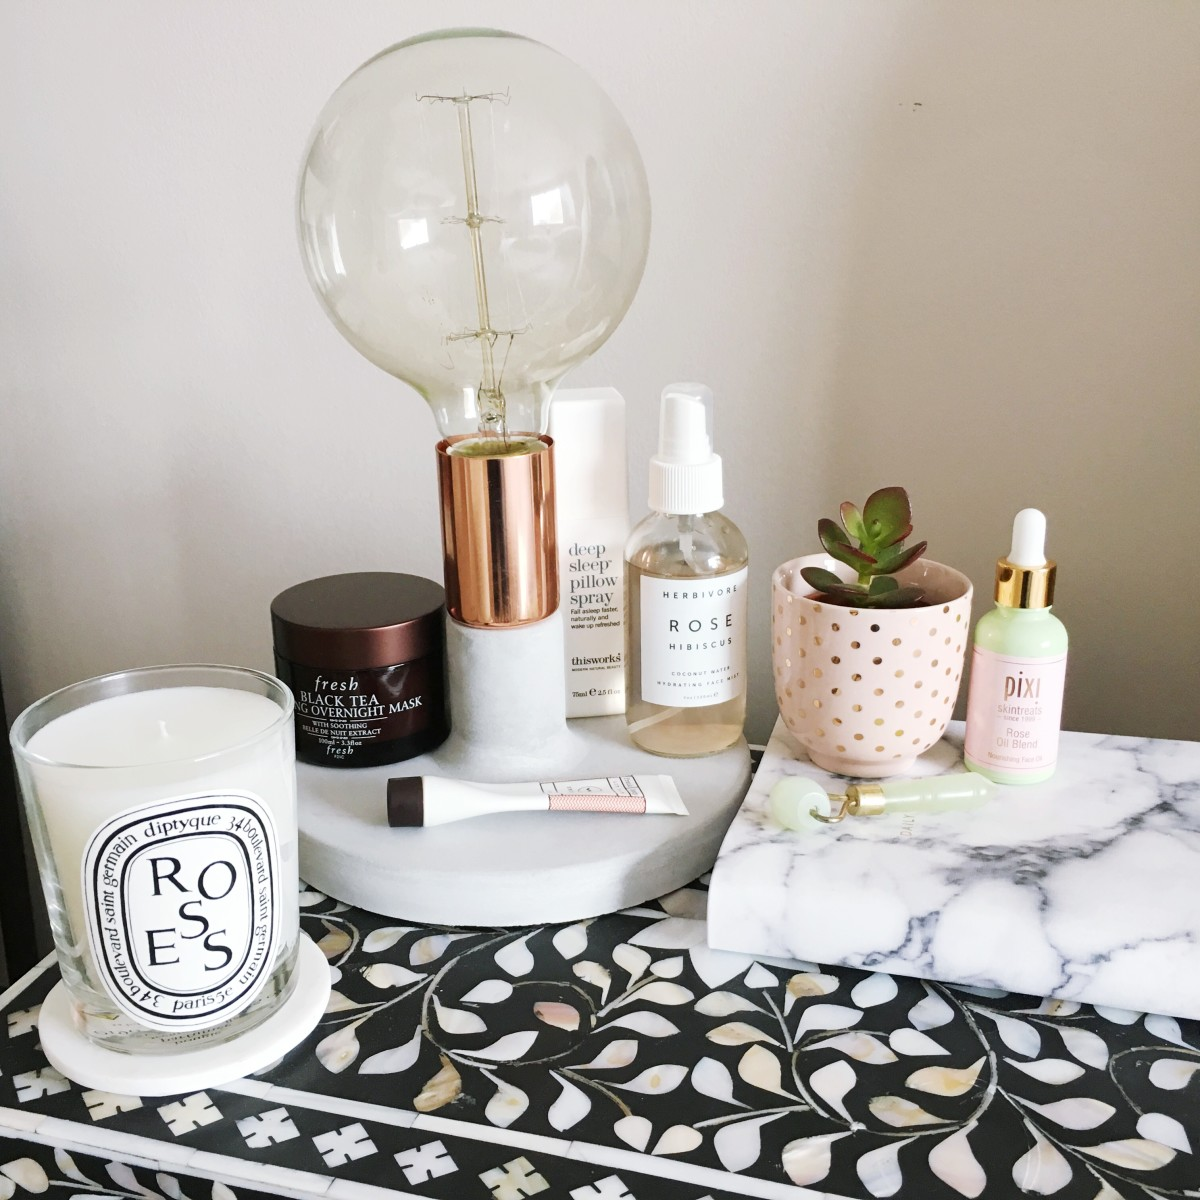 If we could only keep our bedside tables so nice and neat.